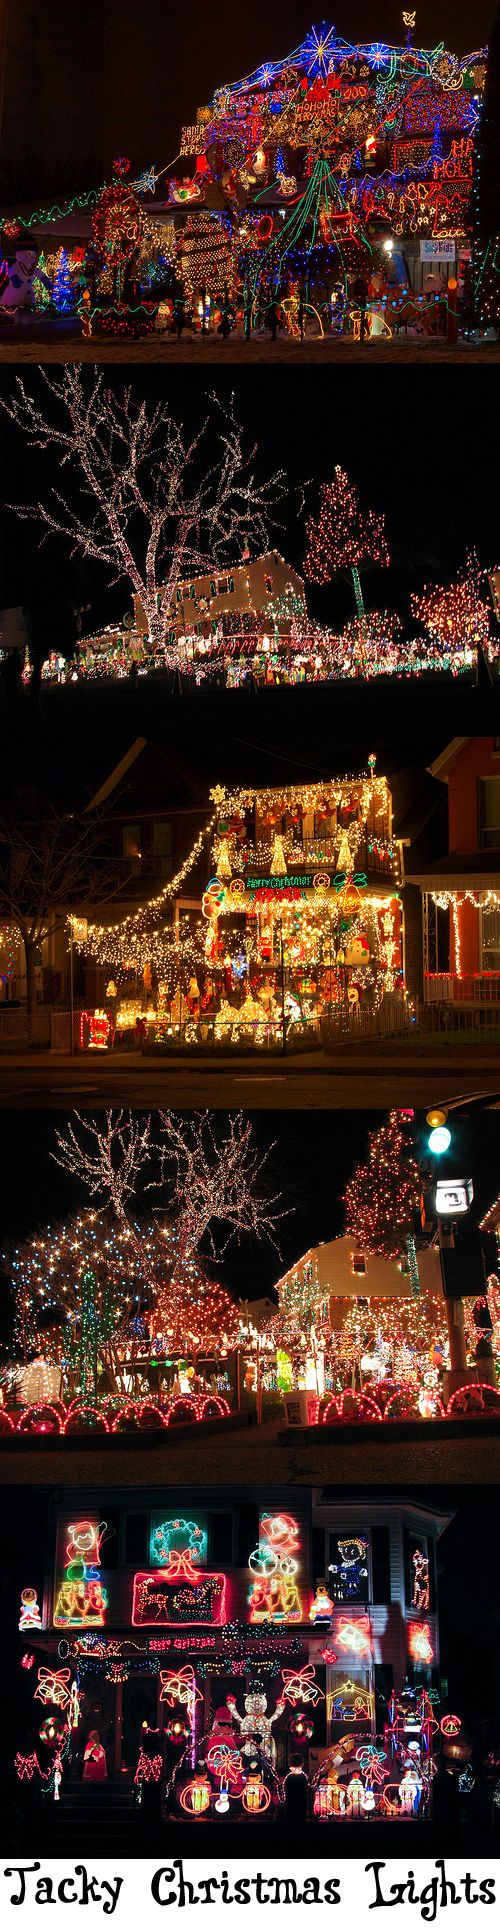 Tacky Christmas Lights, Crazy Christmas Lights, whatever you call them, the kids love them!